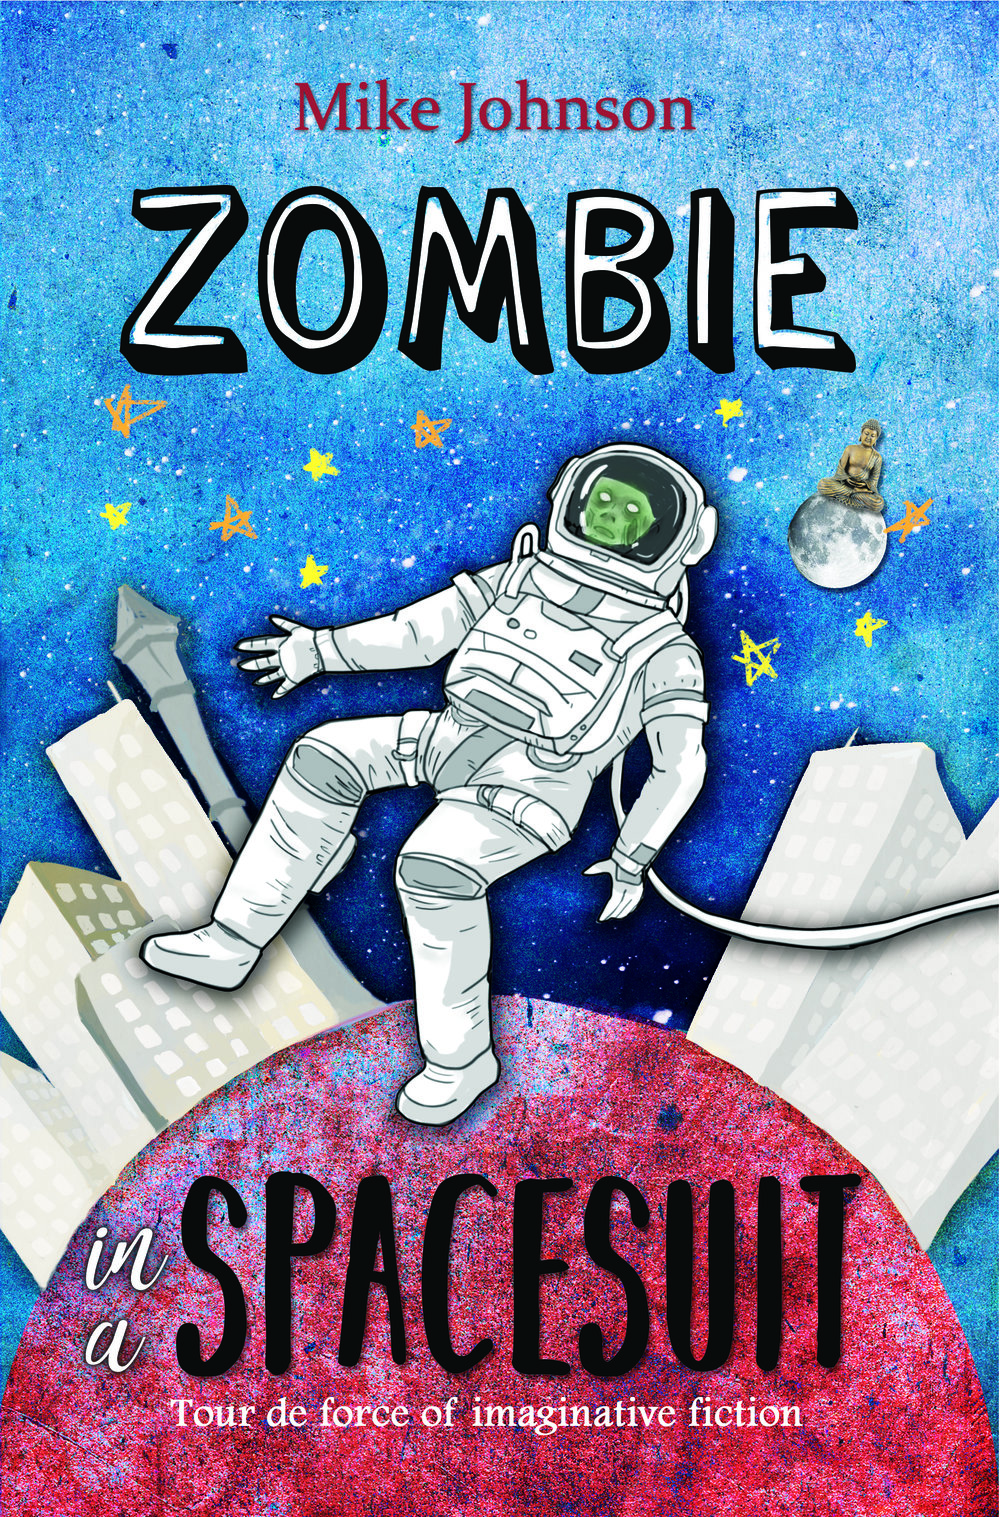 Zombie in a Spacesuit gallery.jpg